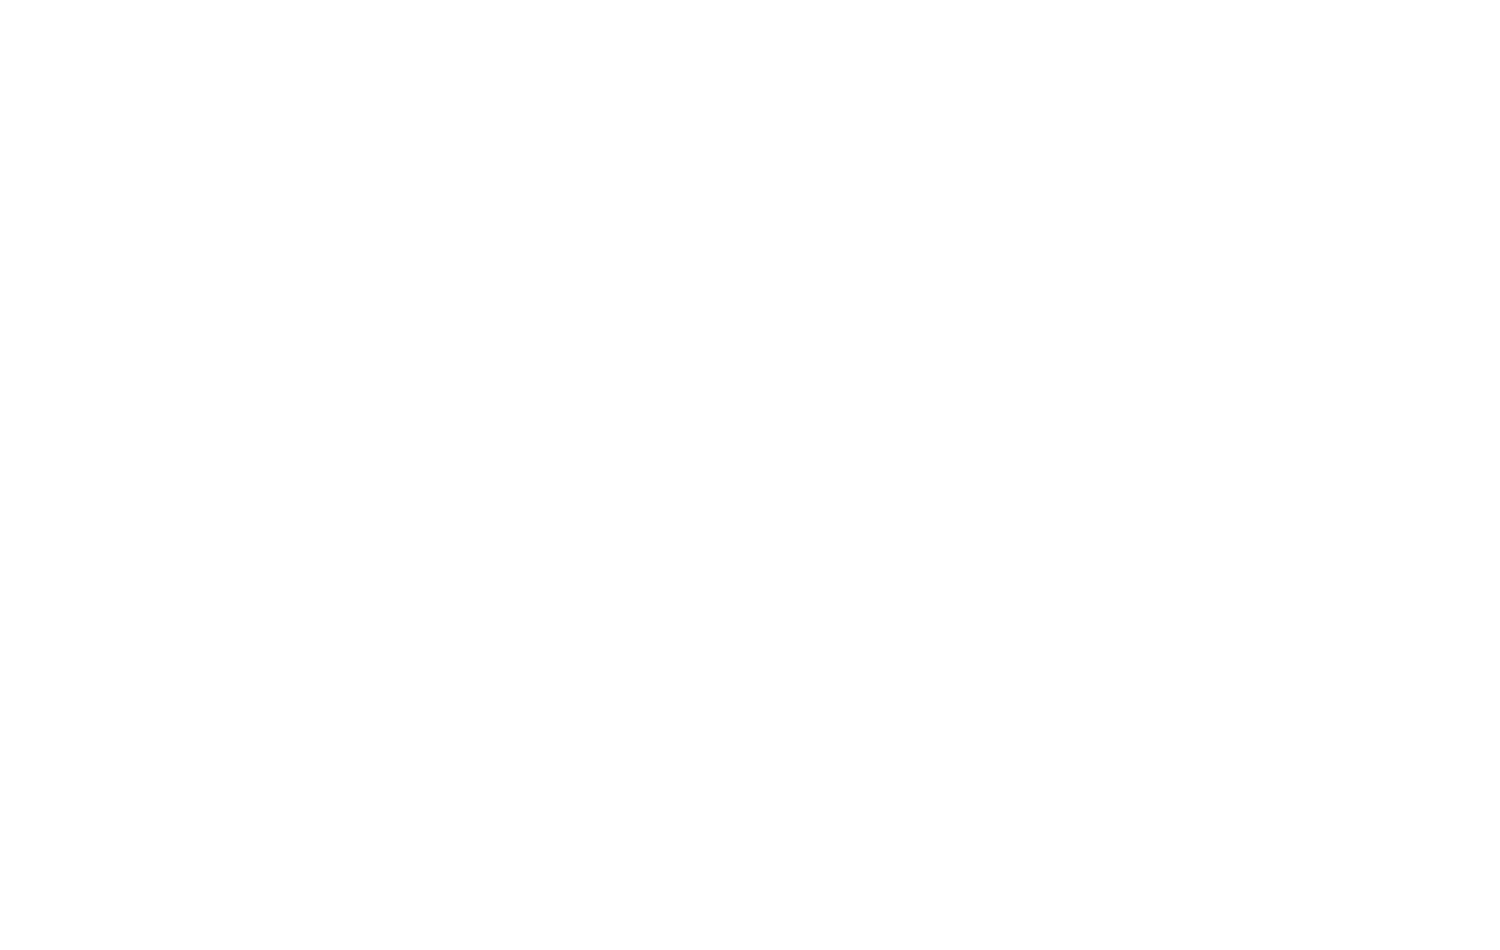 Telematics Capture Method Diagram